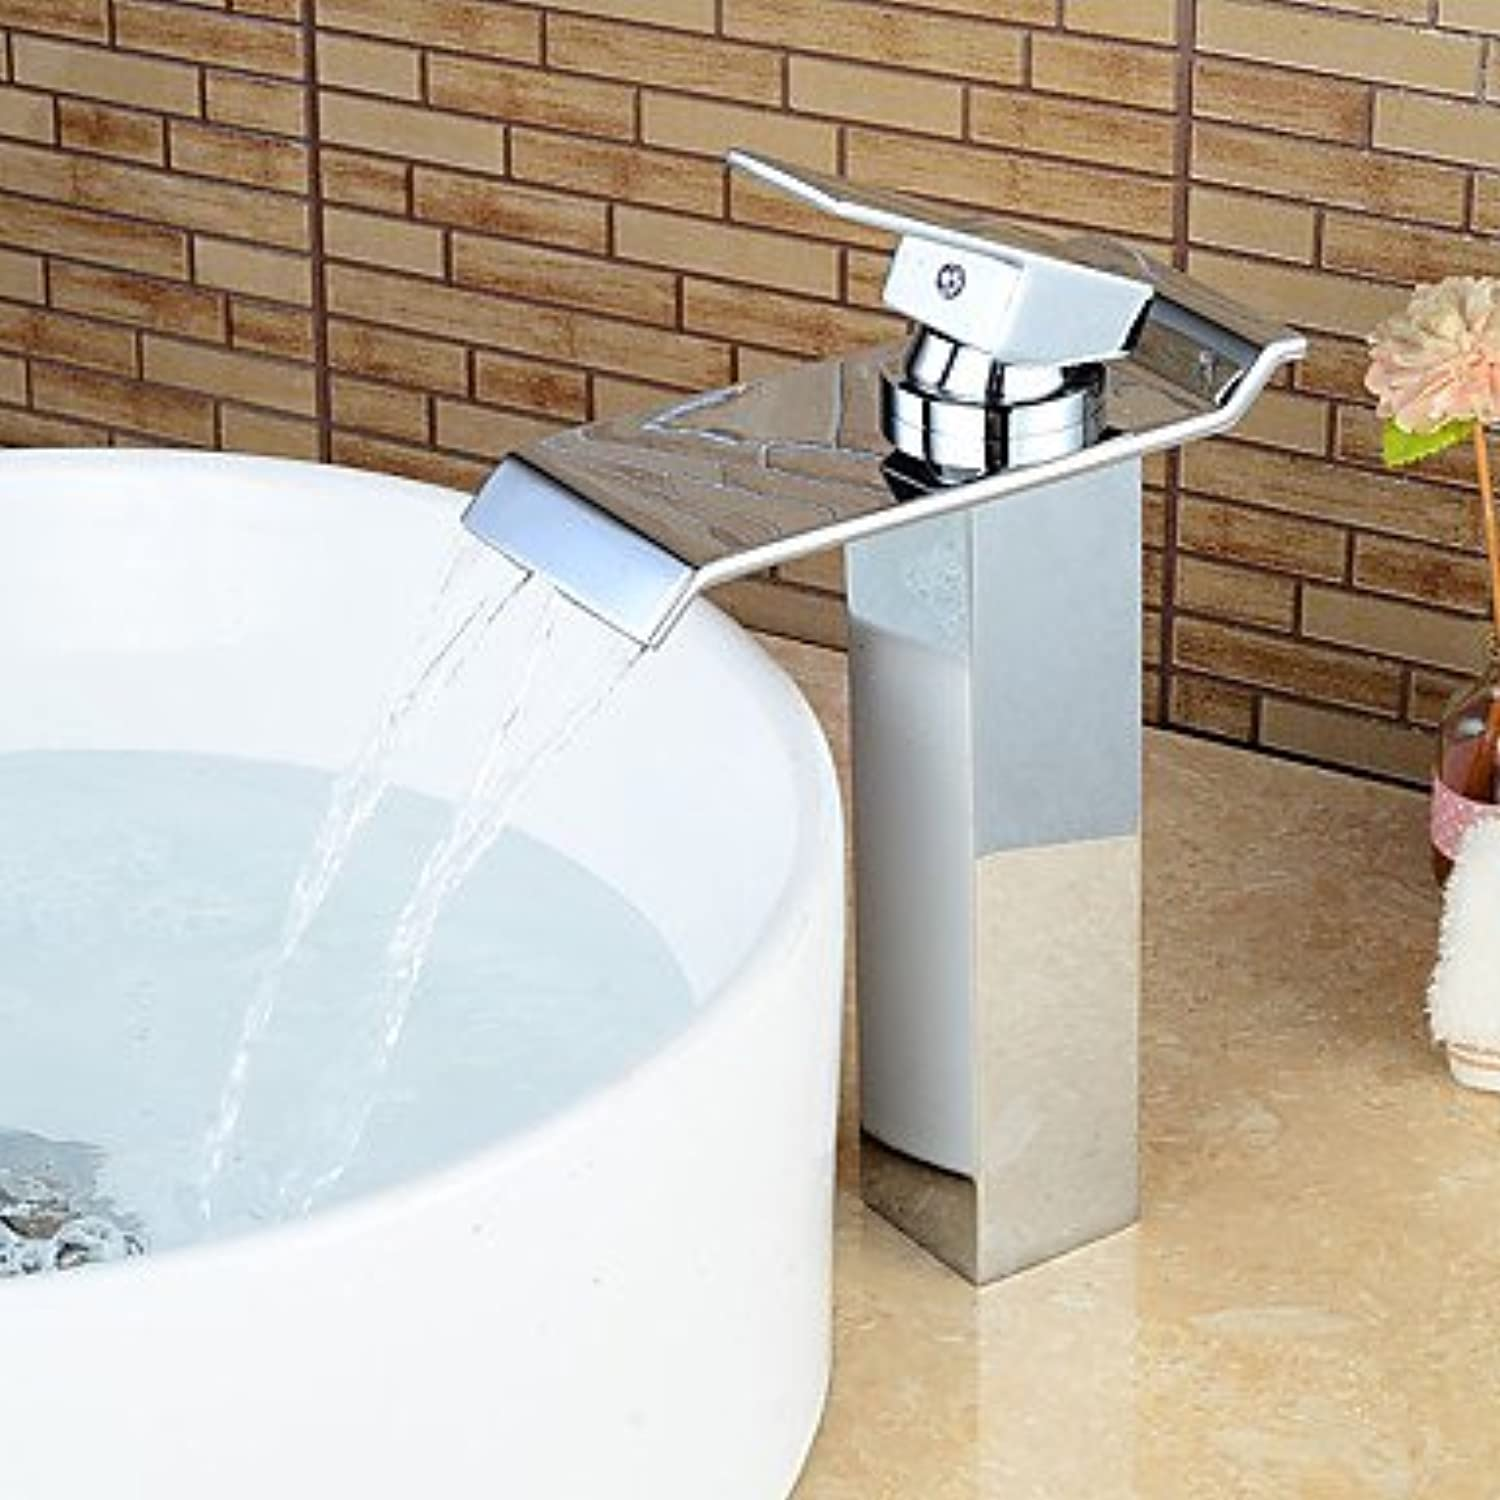 AA Faucet£? Raised chrome contemporary waterfall bathroom sink faucet